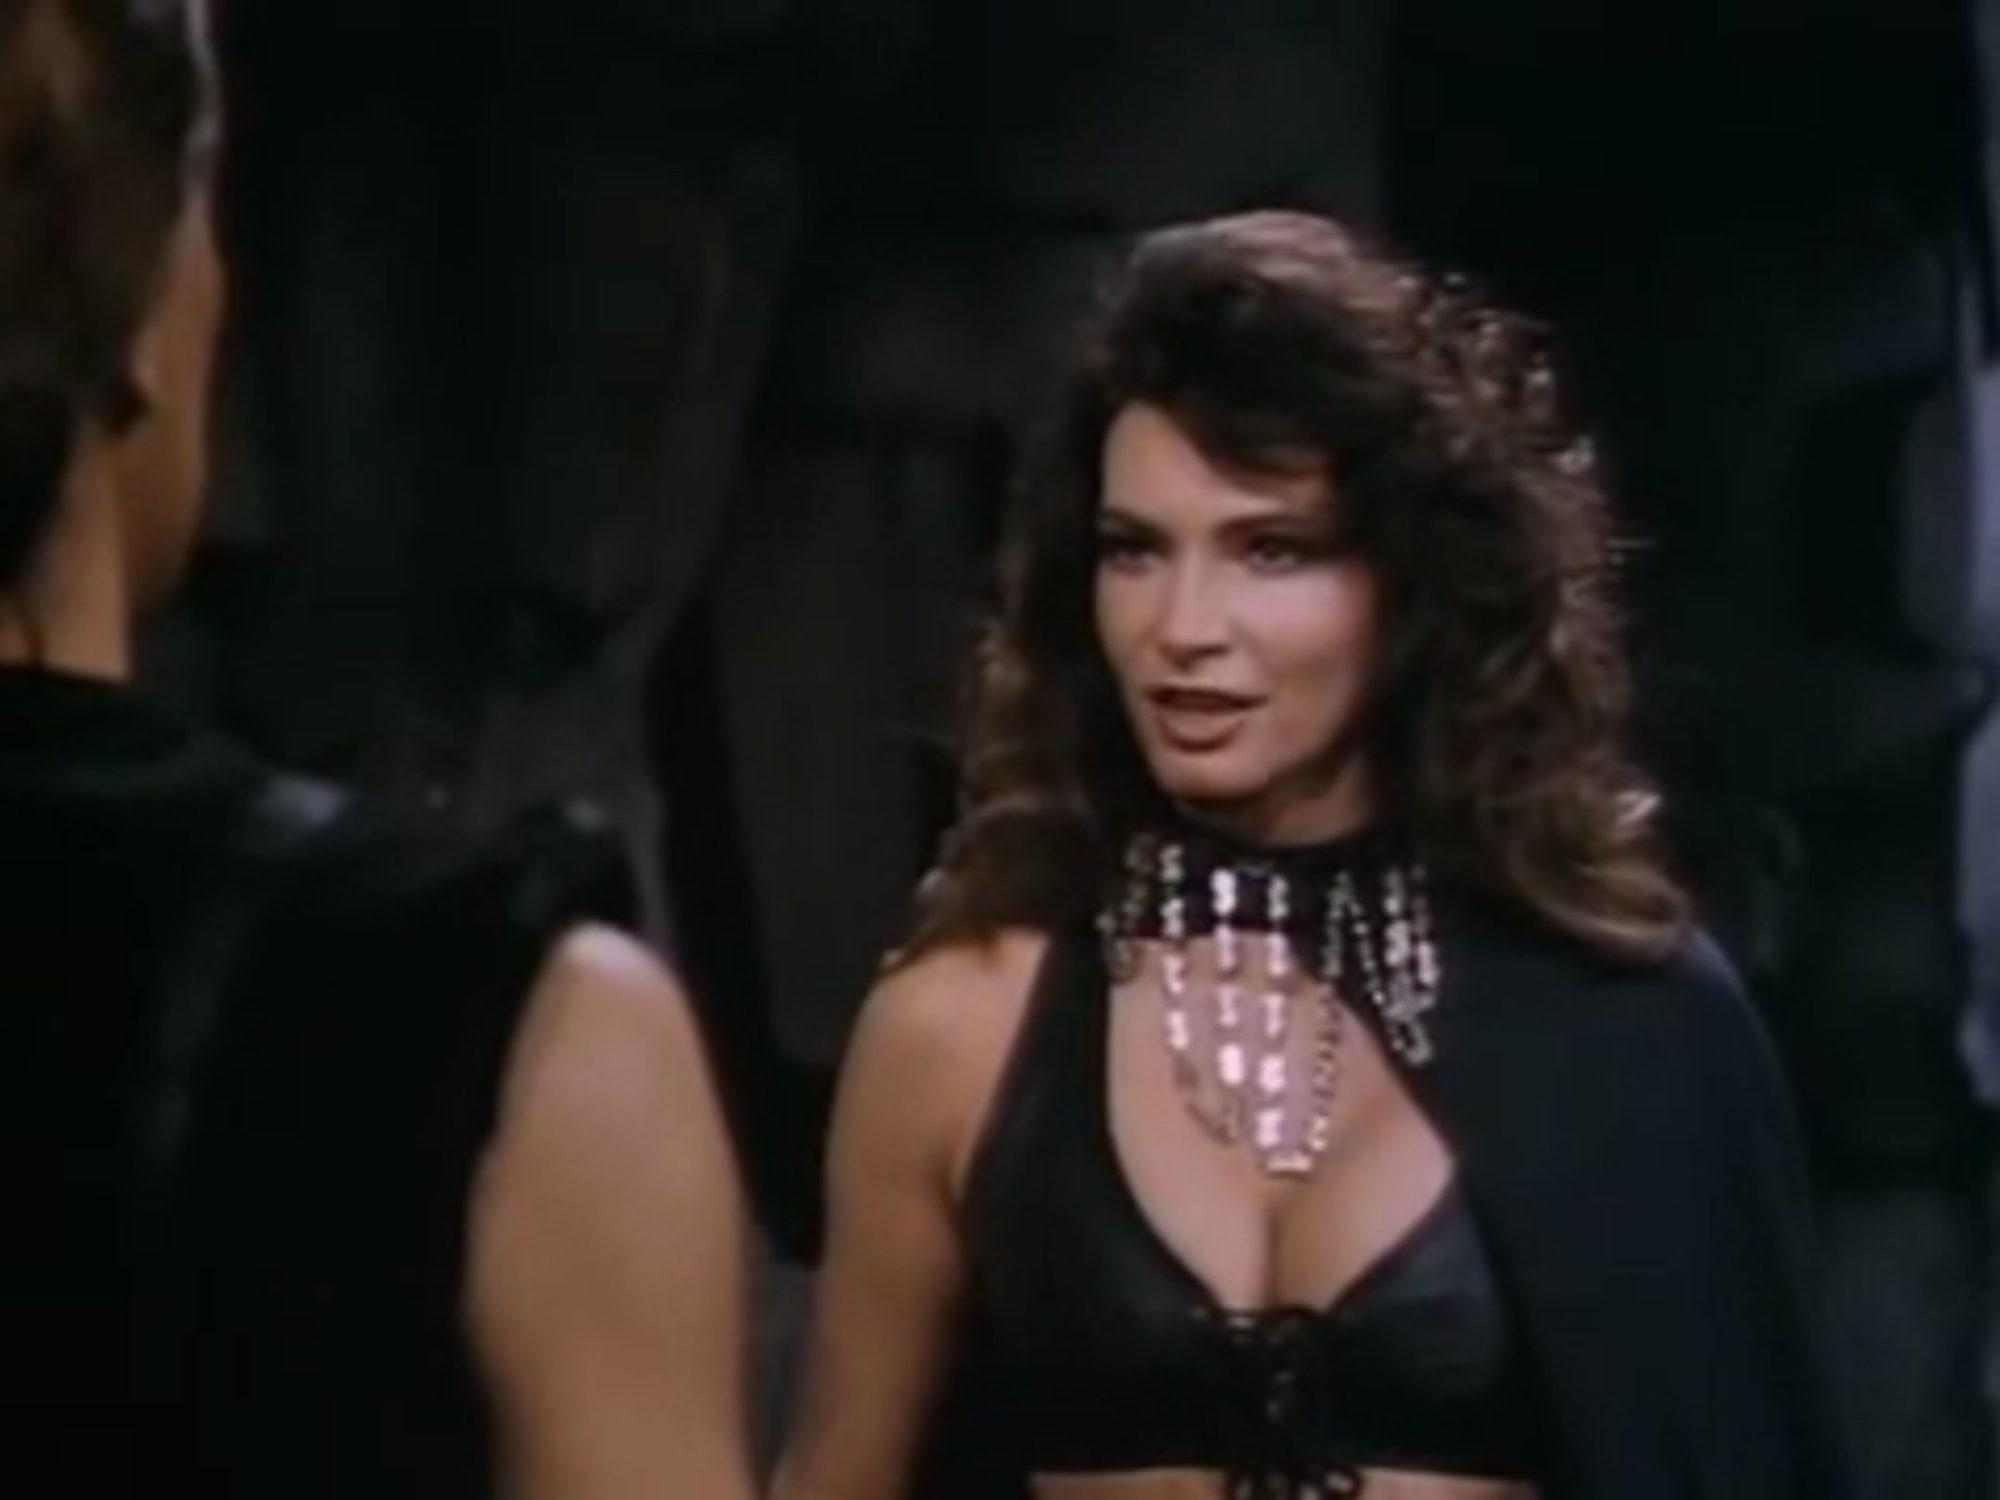 Toni Naples in Deathstalker II: Duel of the Titans